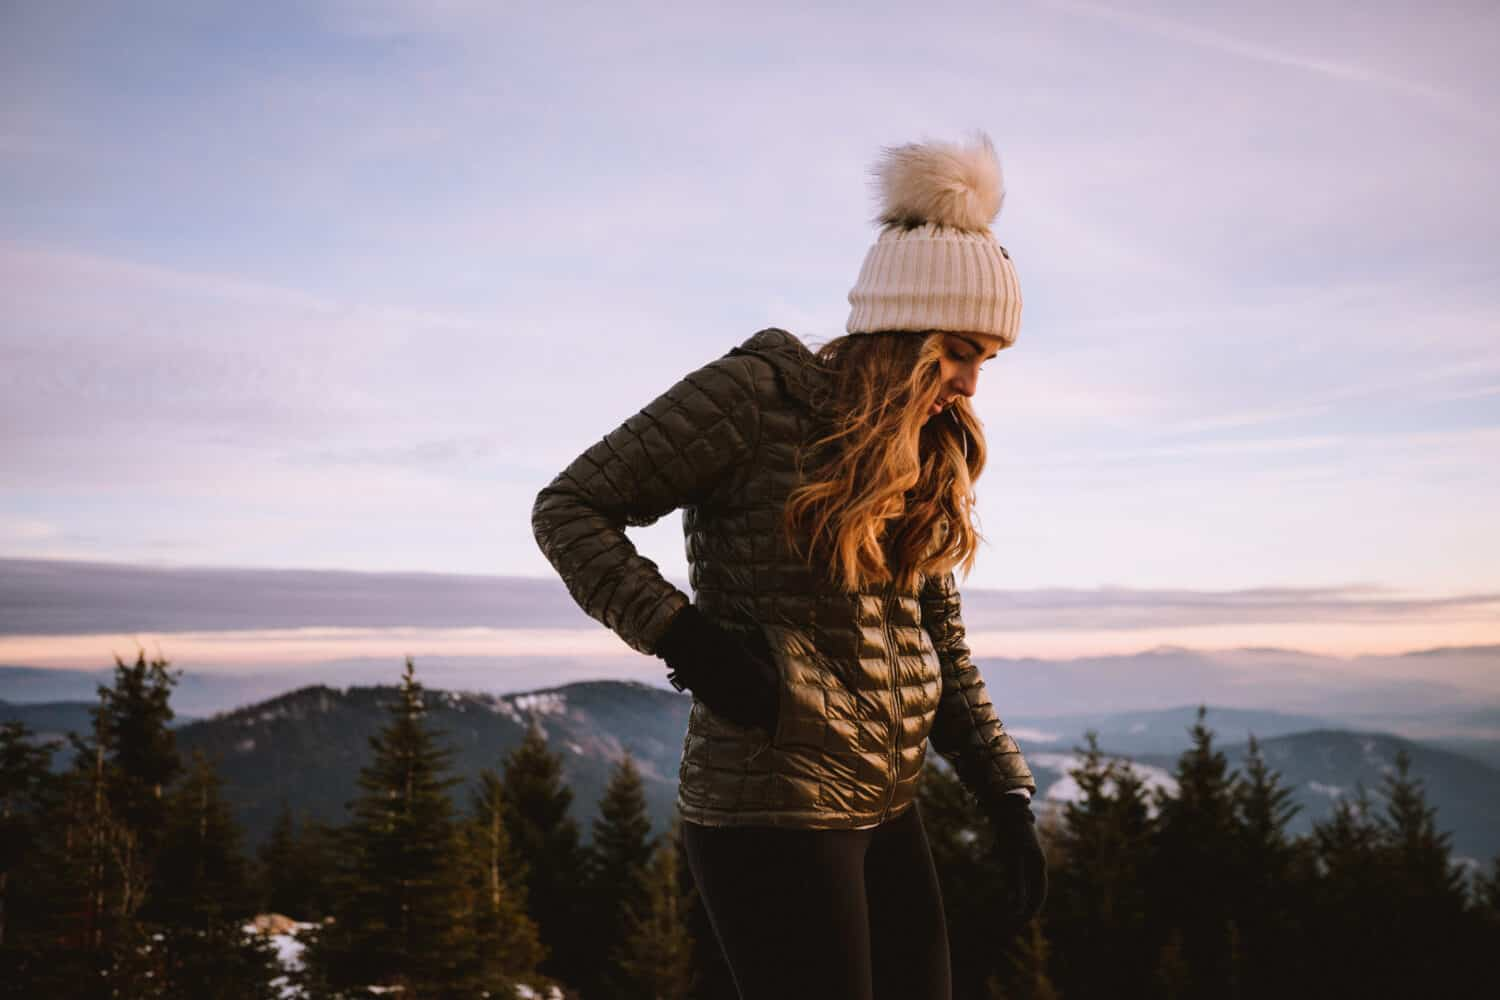 Emily wearing lightweight Nano Puff Jacket - Banff Winter Packing List Essentials - TheMandagies.com